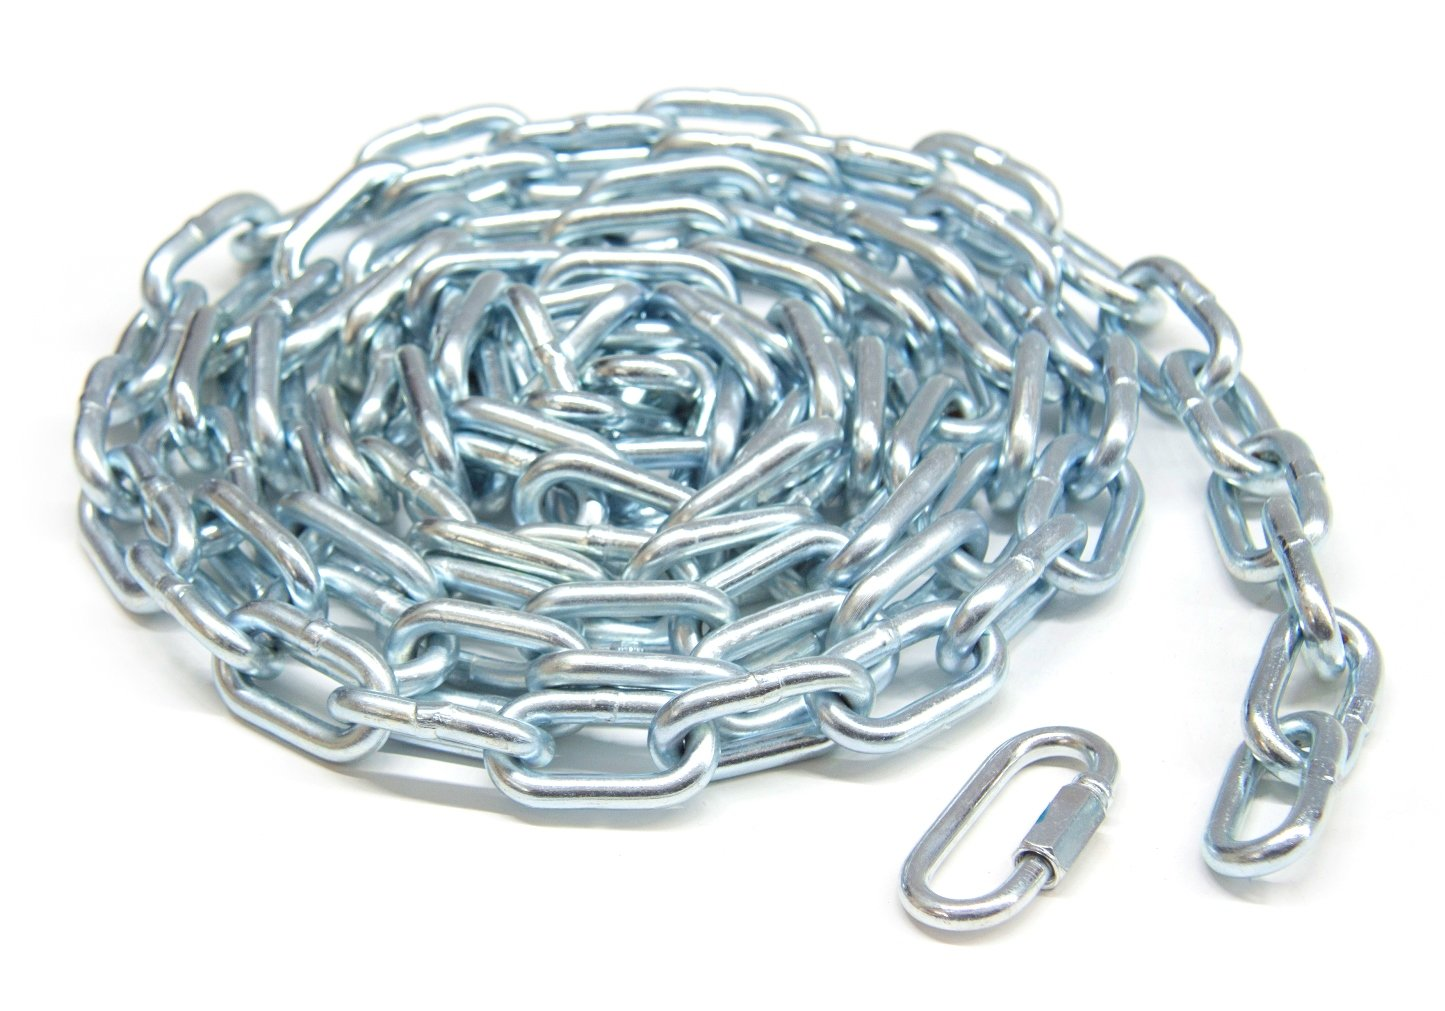 KingChain 699481 1/4'' x 10' Zinc Plated Grade 30 Proof Coil Chain by KingChain